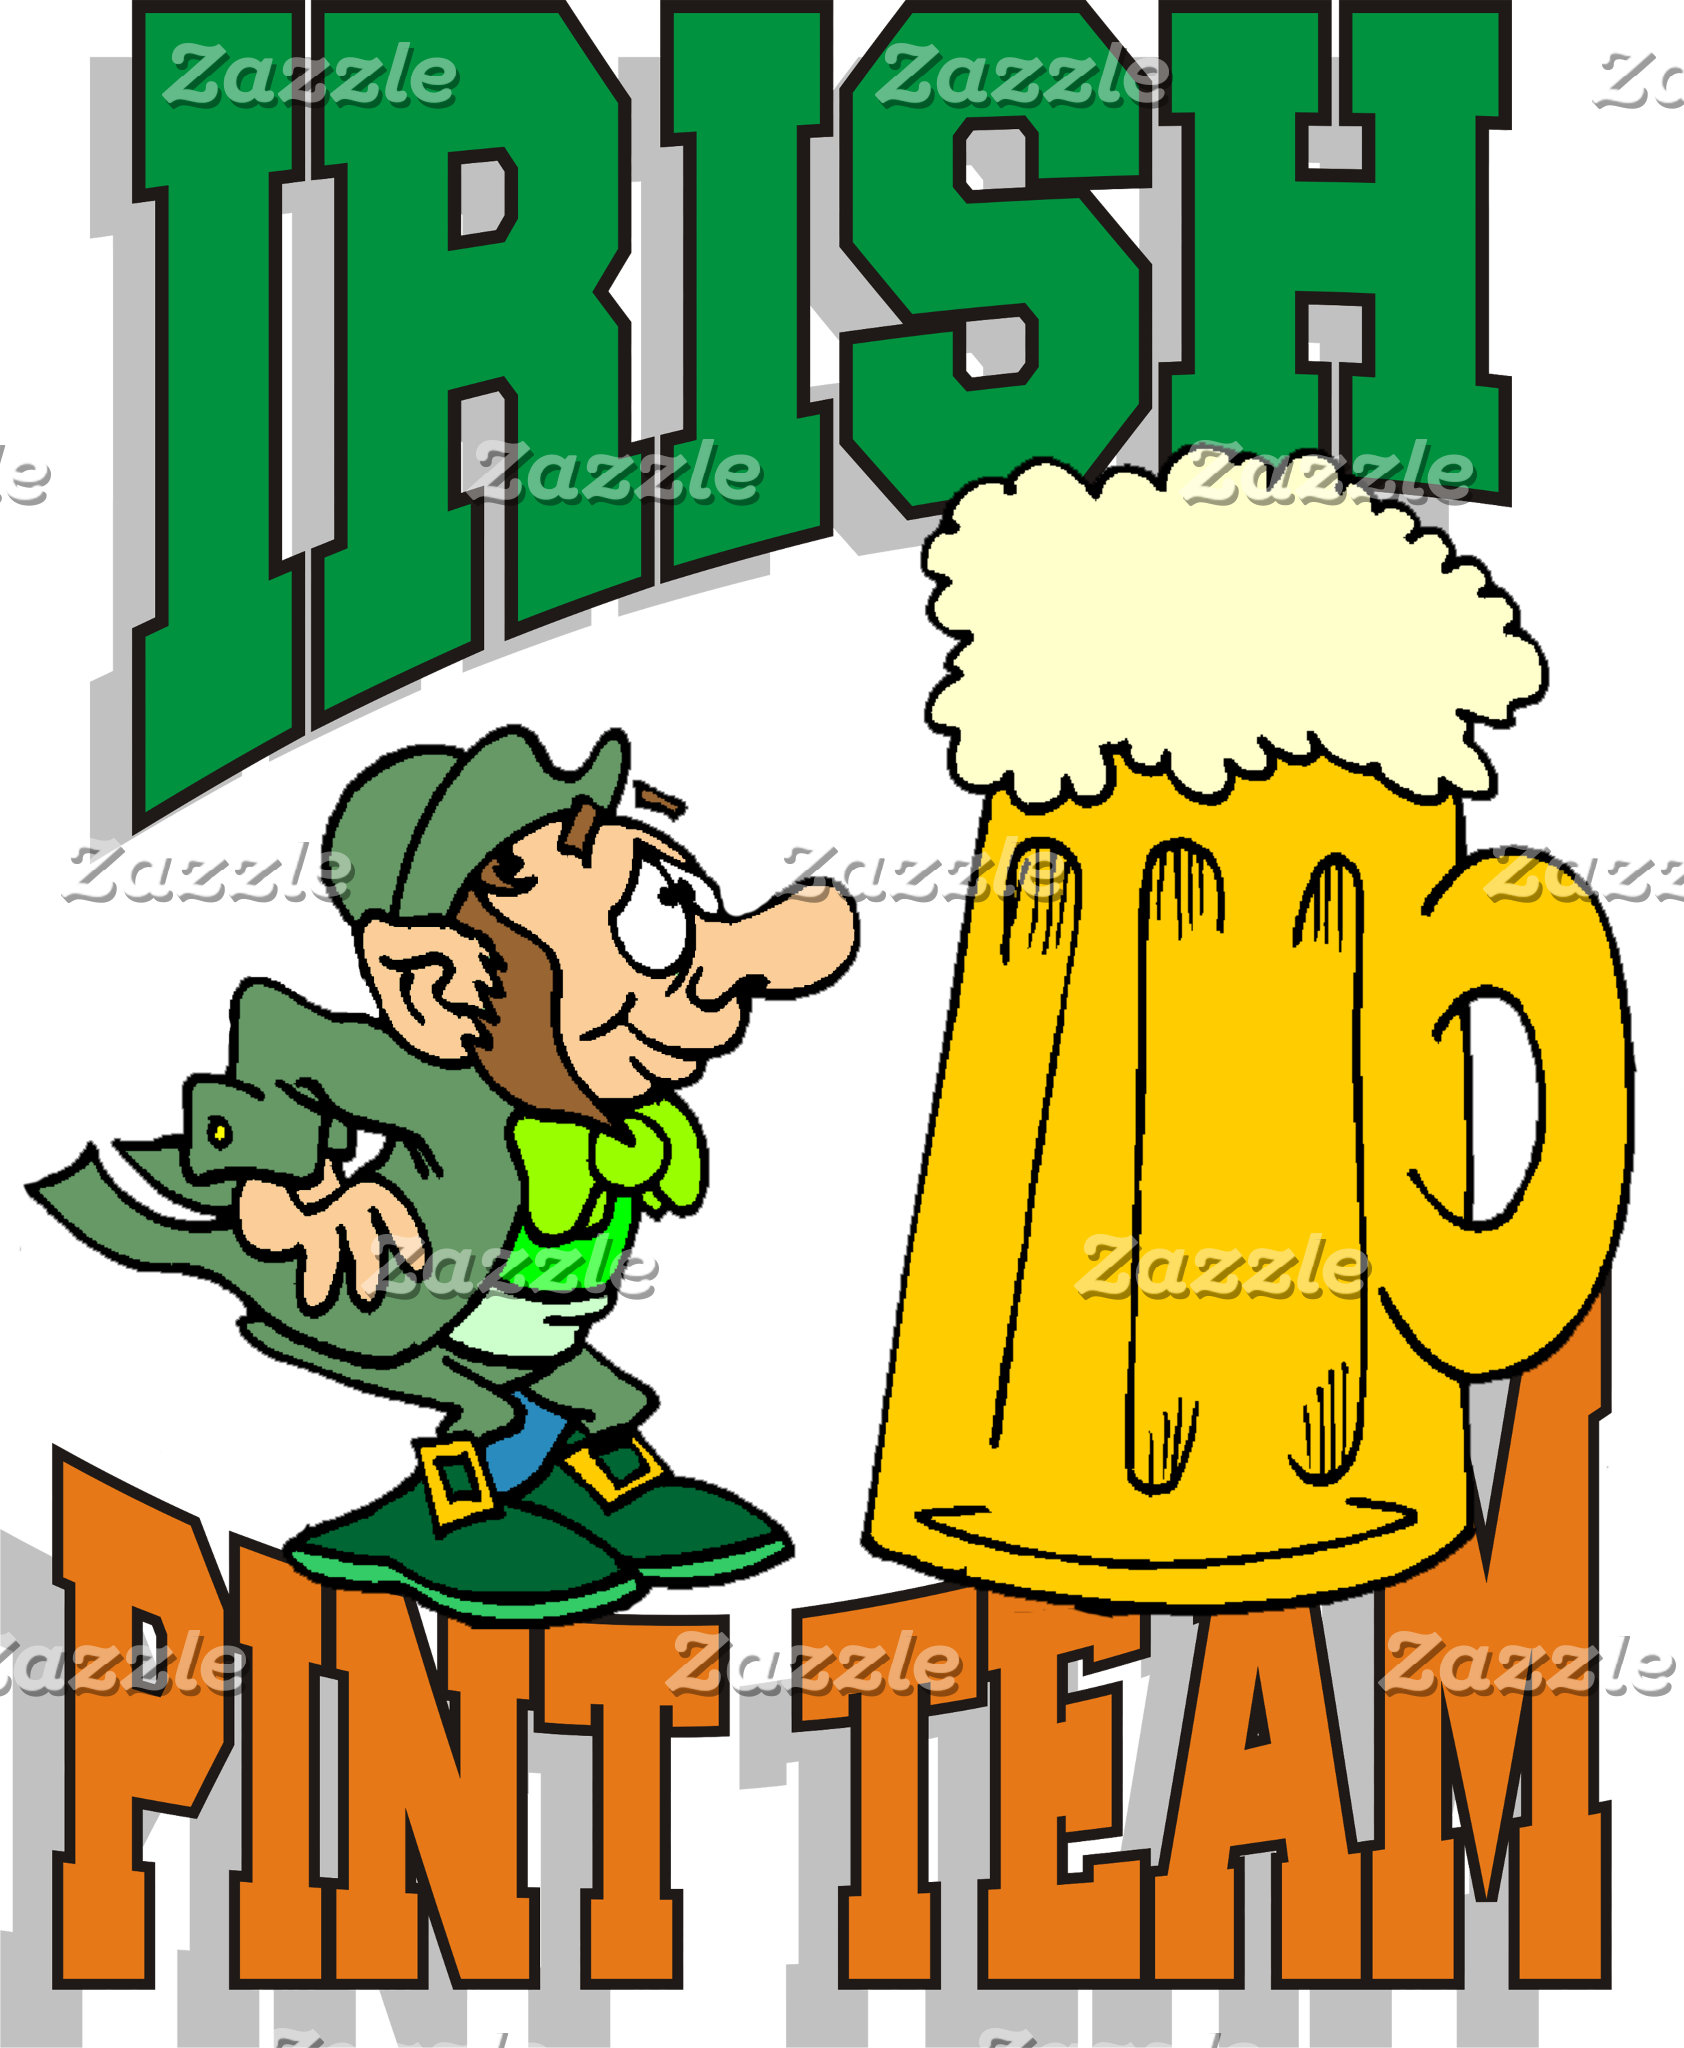 Funny Irish Pint Team T-Shirts Gifts Cards